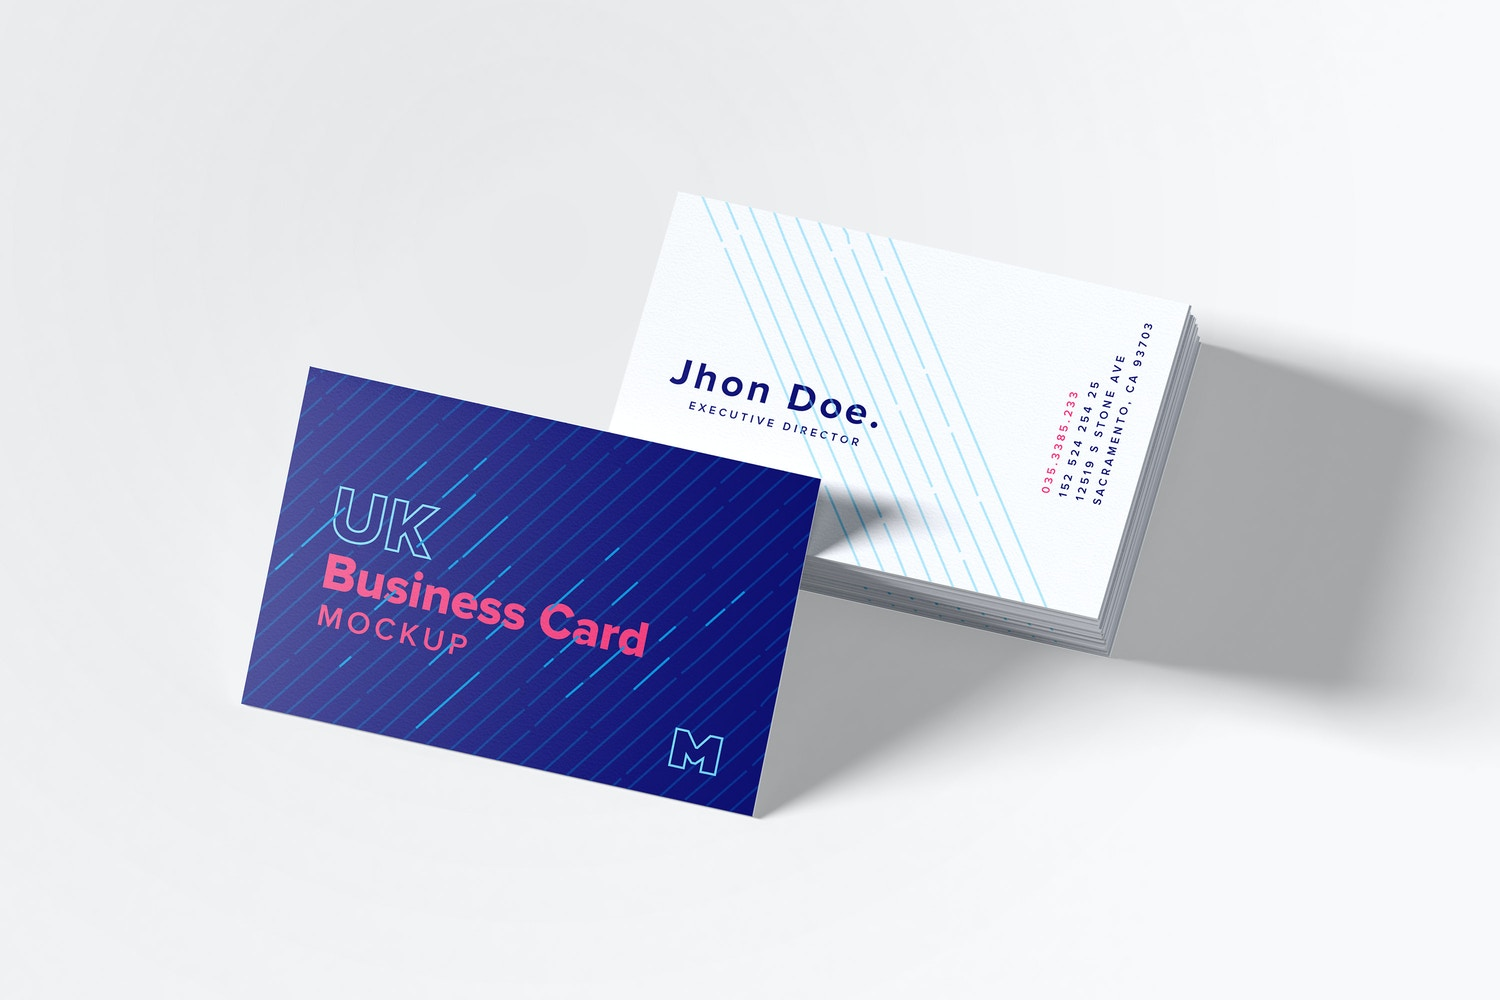 UK Business Cards Mockup 06 by Original Mockups on Original Mockups